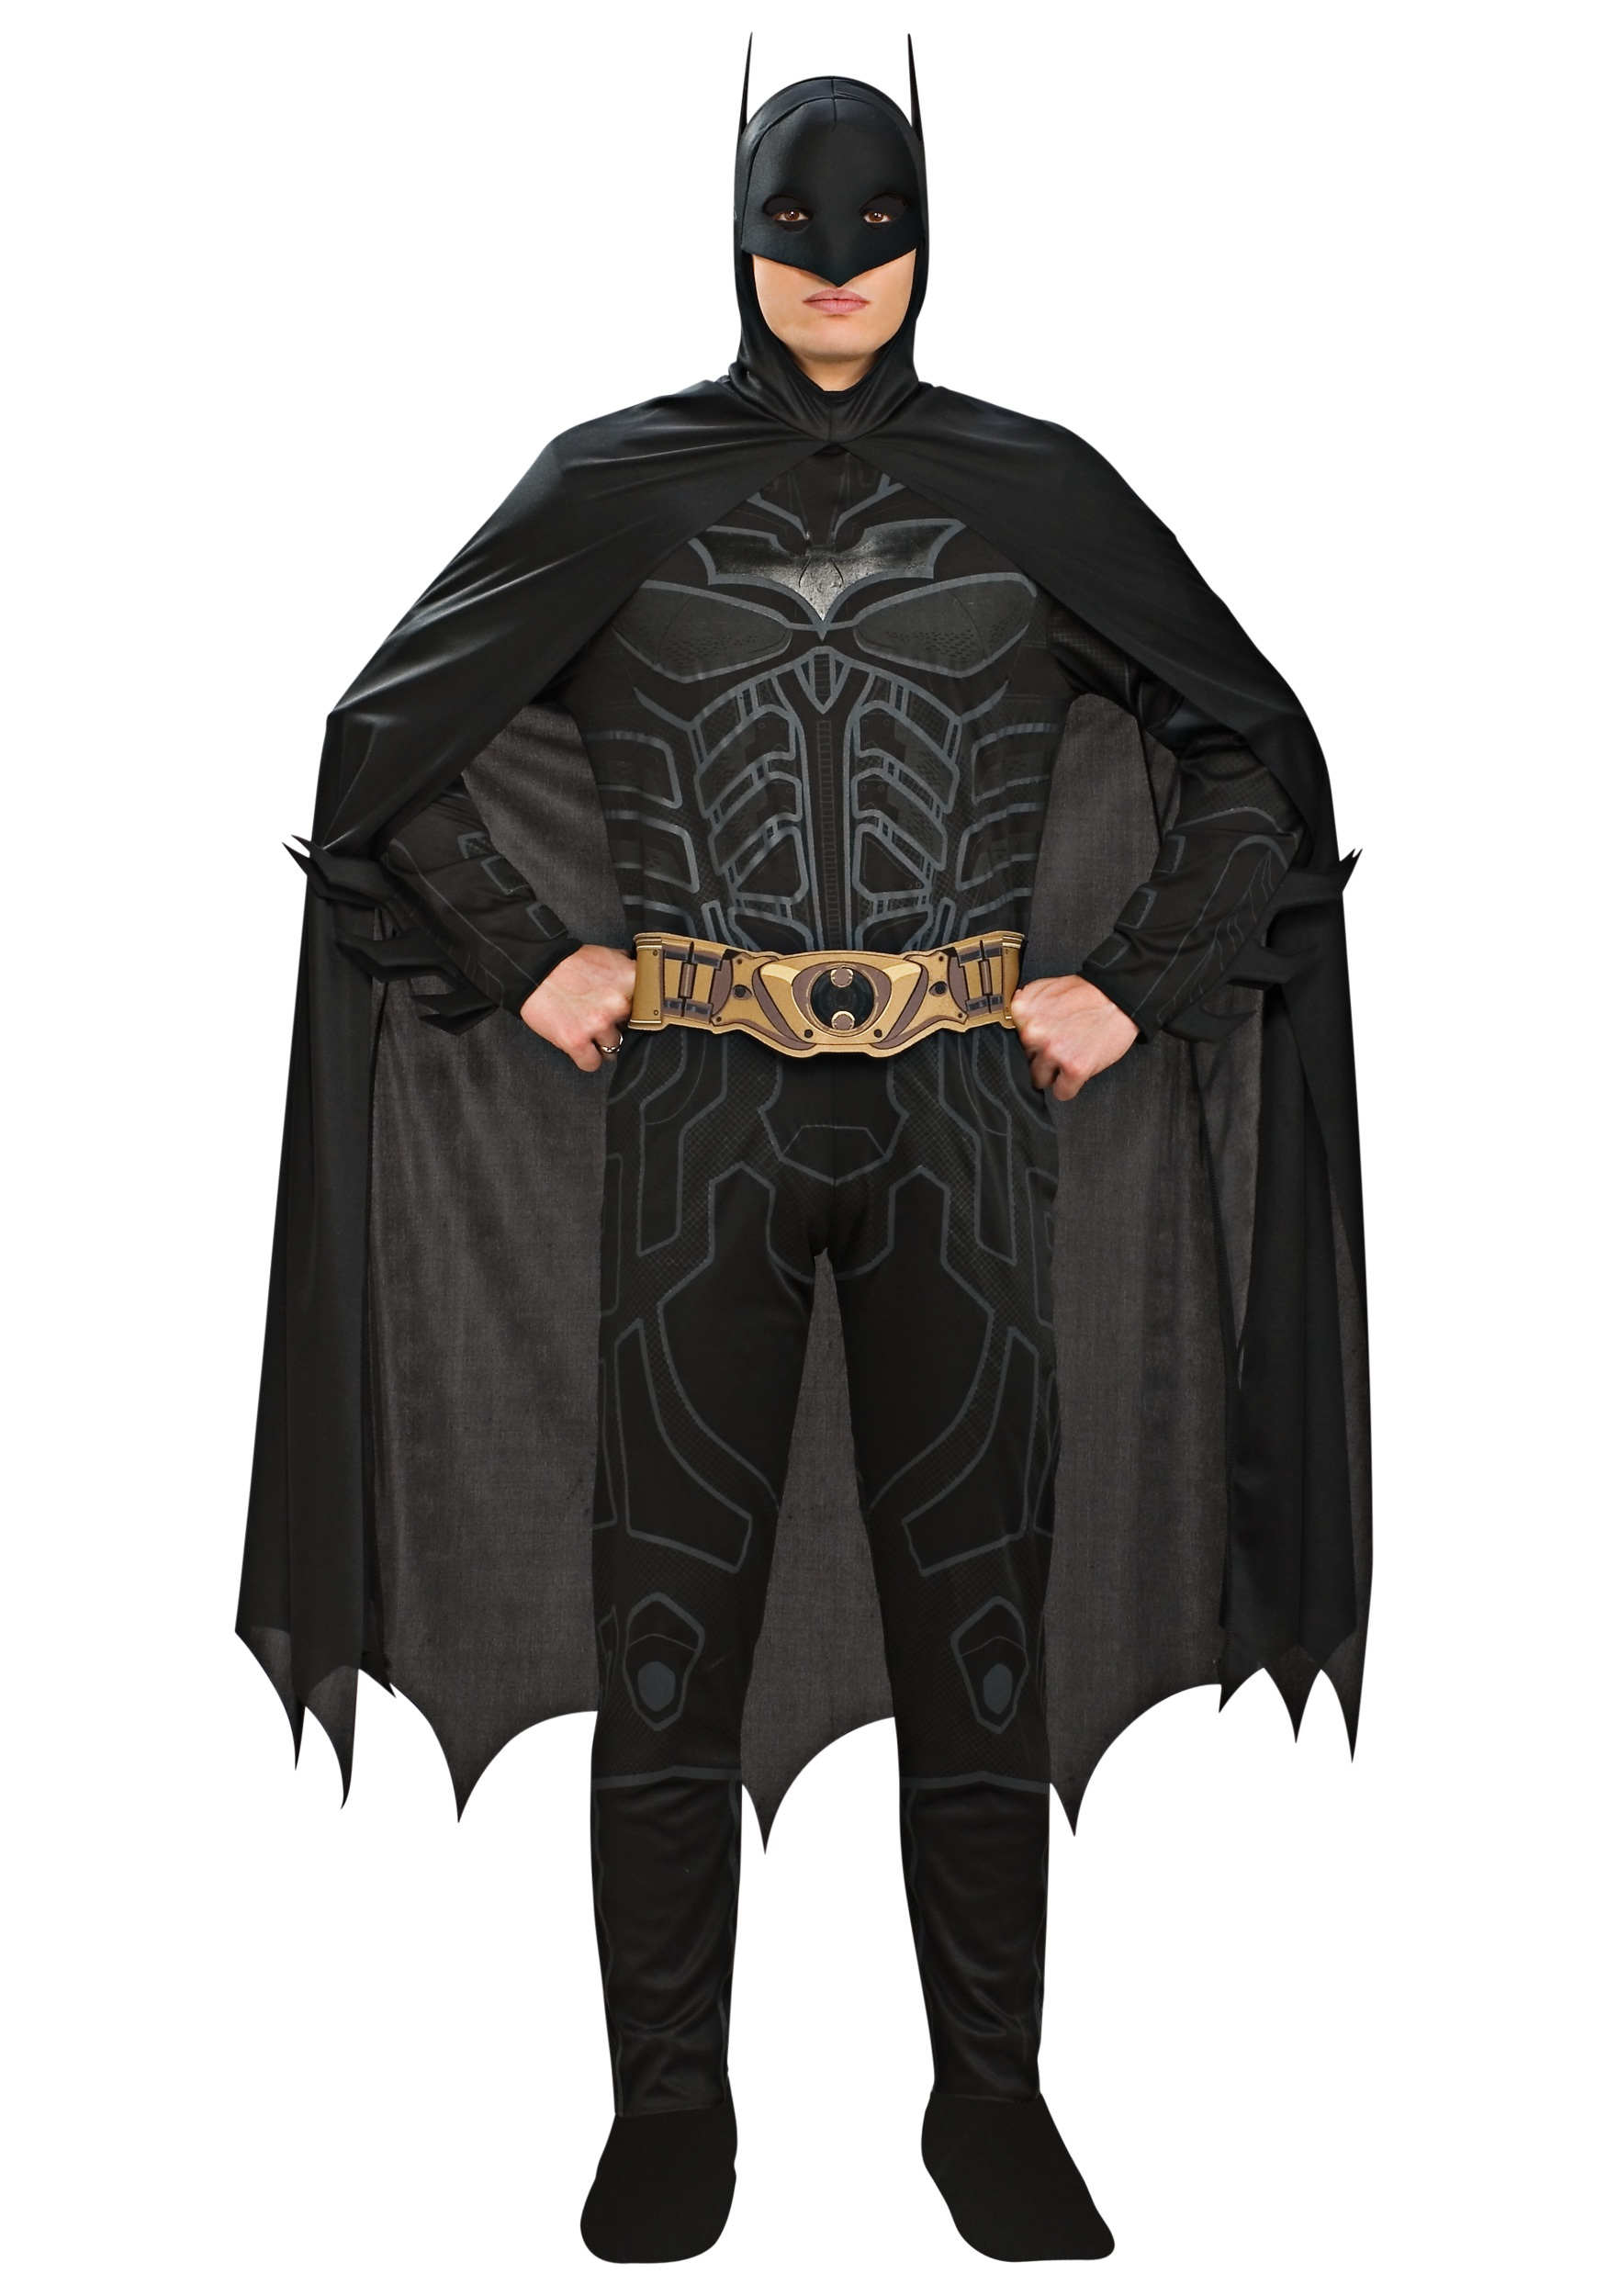 Dark Knight Rises Batman Costume RU880629